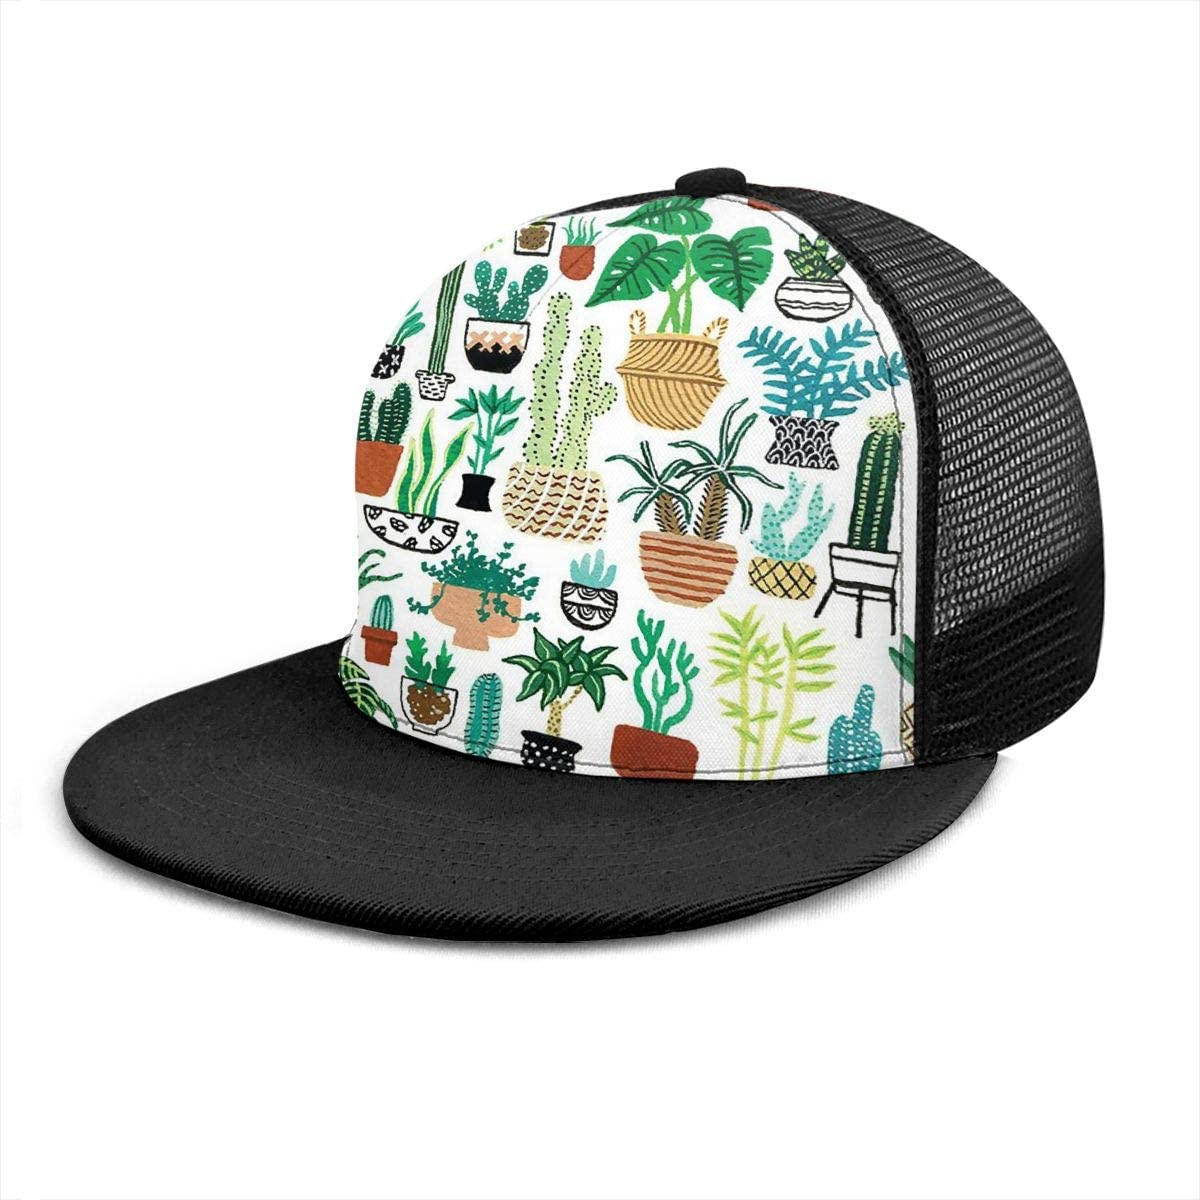 Ry71@Cap Unisex 100/% Polyester Potted Plants Mesh Hat Cool Snapback Hat for Unisex